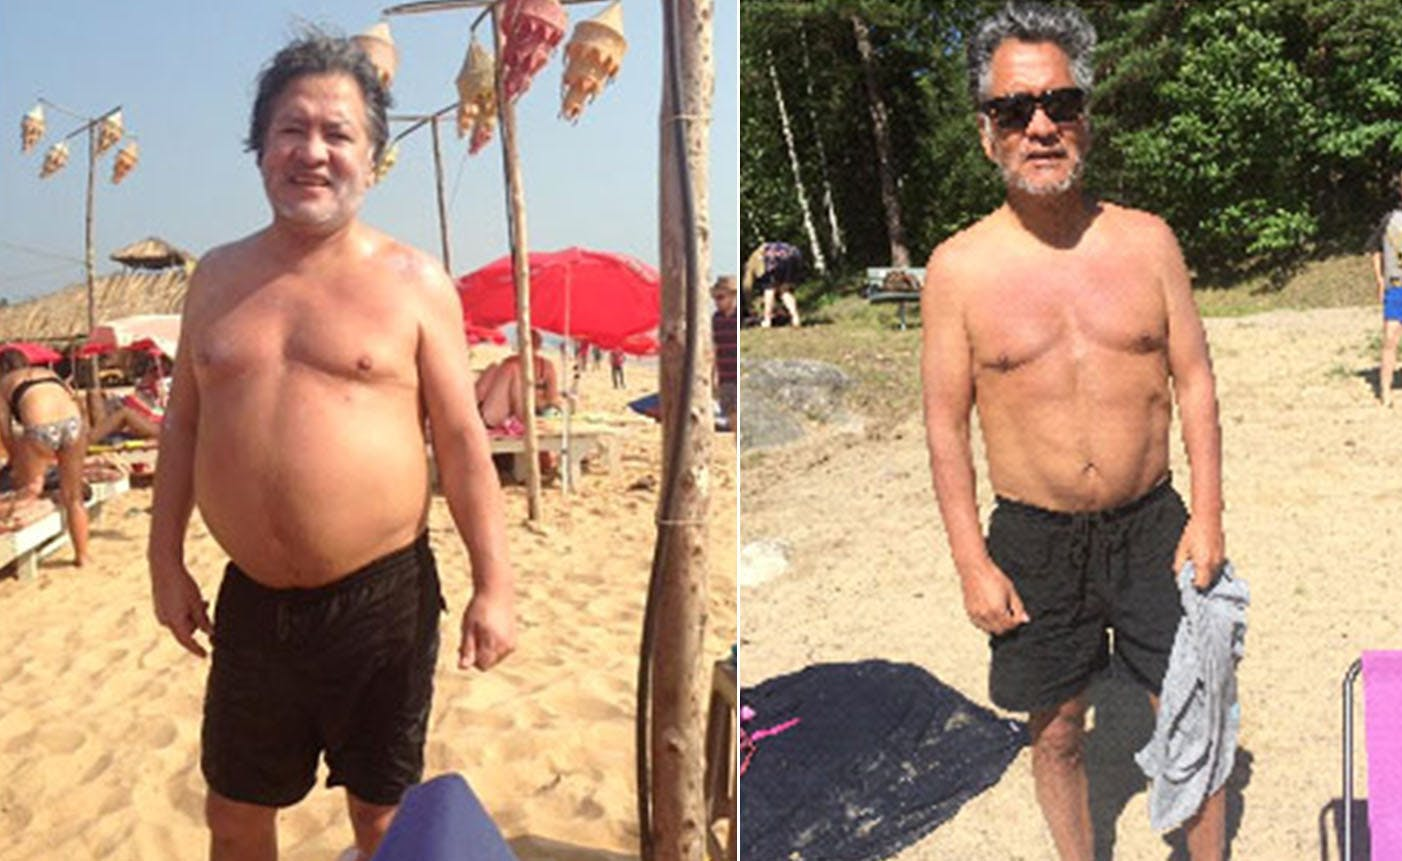 Reversing type 2 diabetes in only 2.5 months with keto and fasting